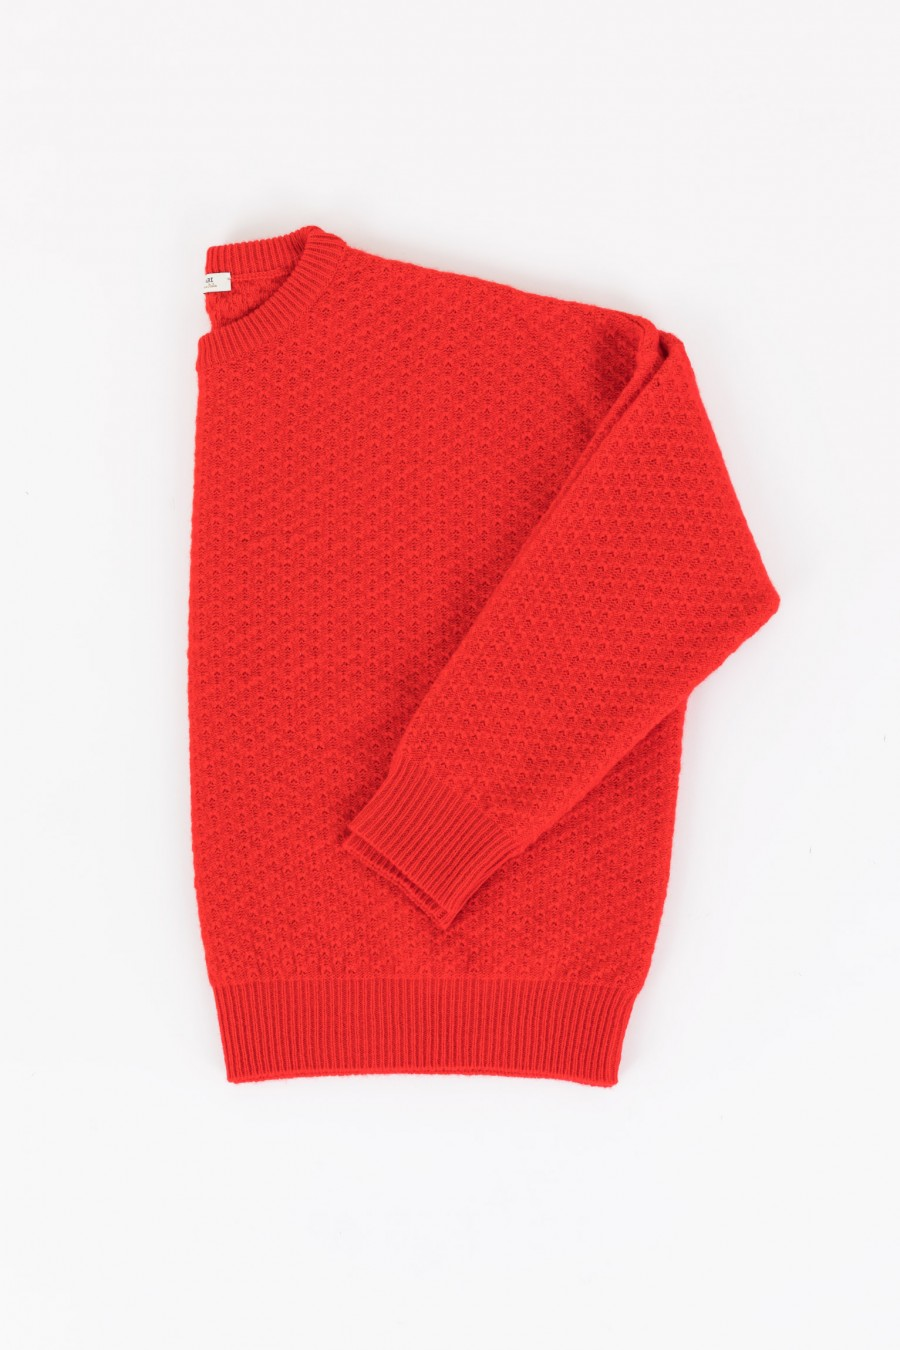 Red jumper in open-worked knitting